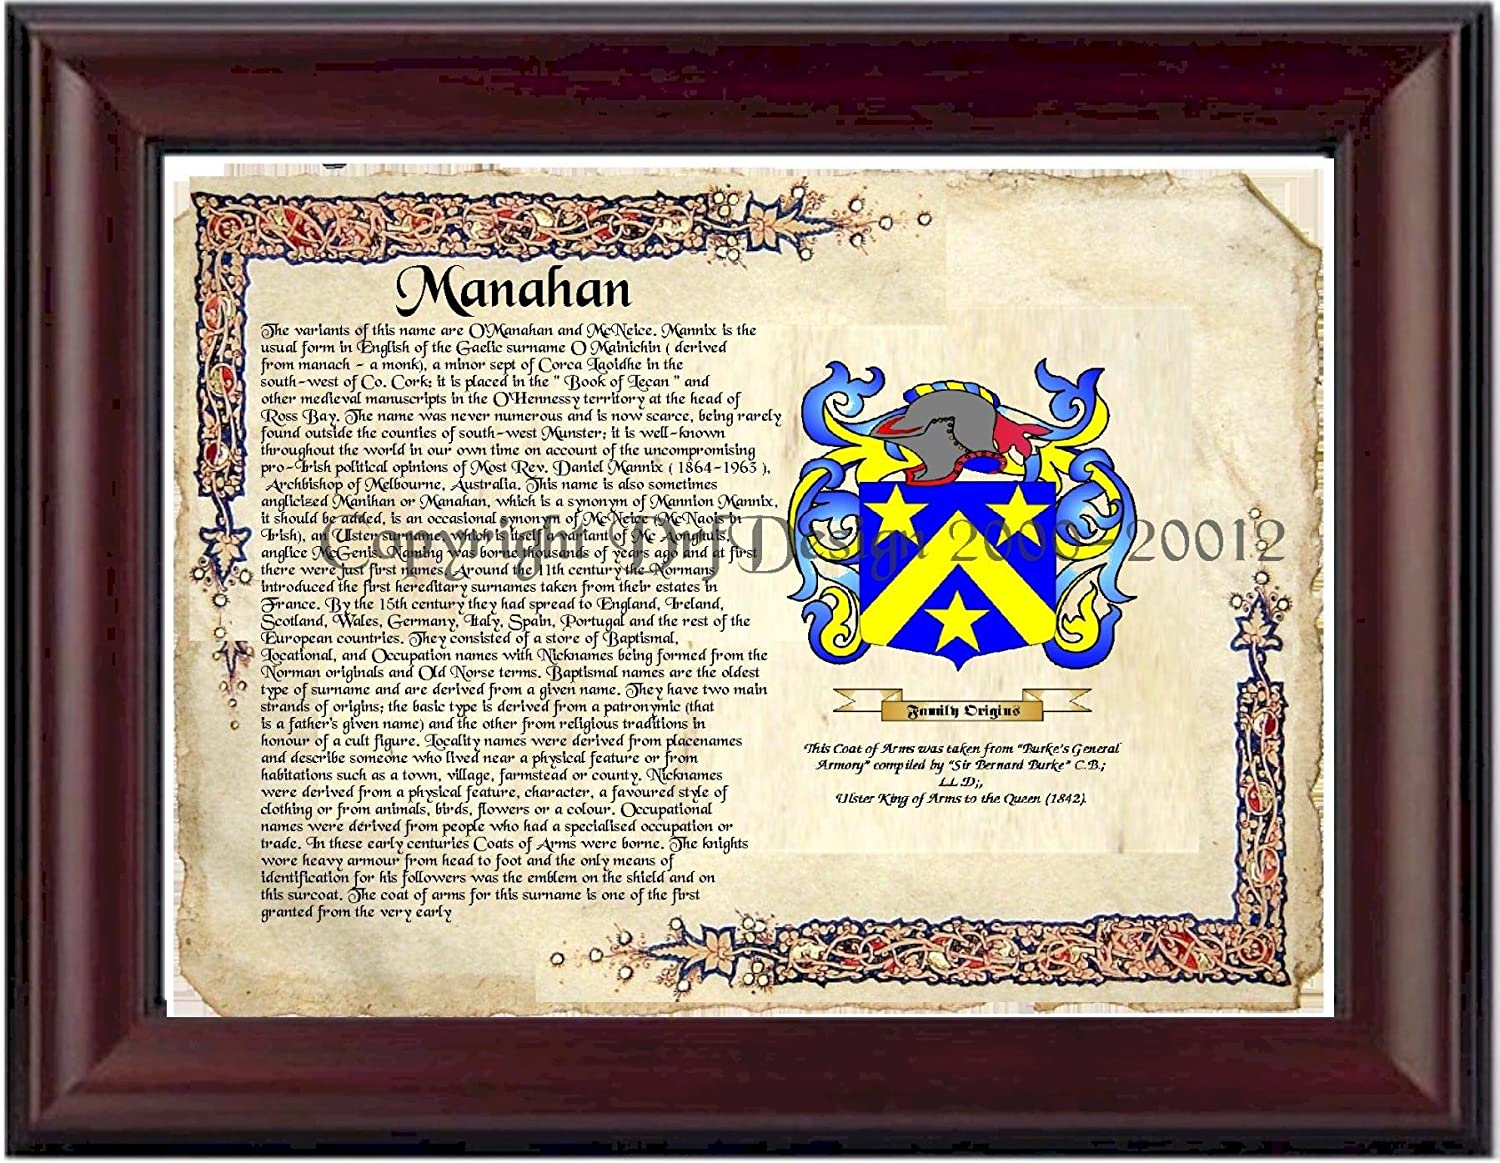 Amazon.com: Manahan Coat of Arms/ Family Crest on Fine Paper and ...